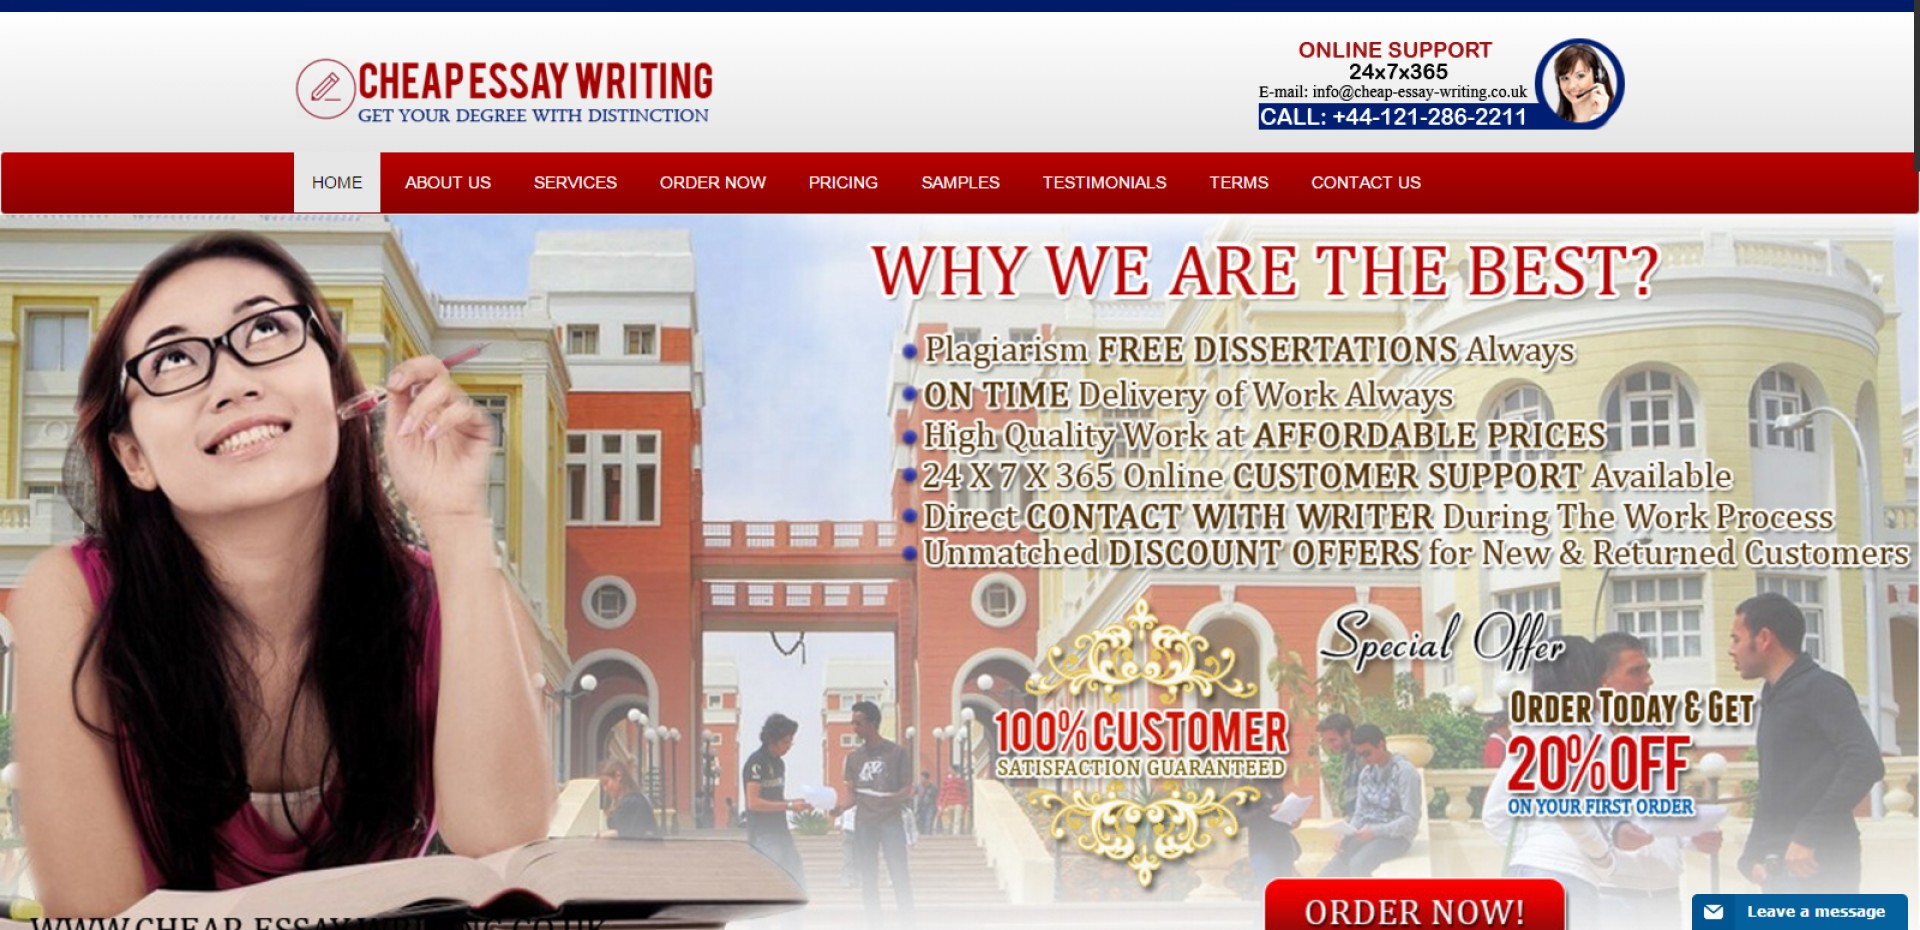 022 Custom Essay Writing Cheap Services Uk Awesome Writers Service Australia 1920